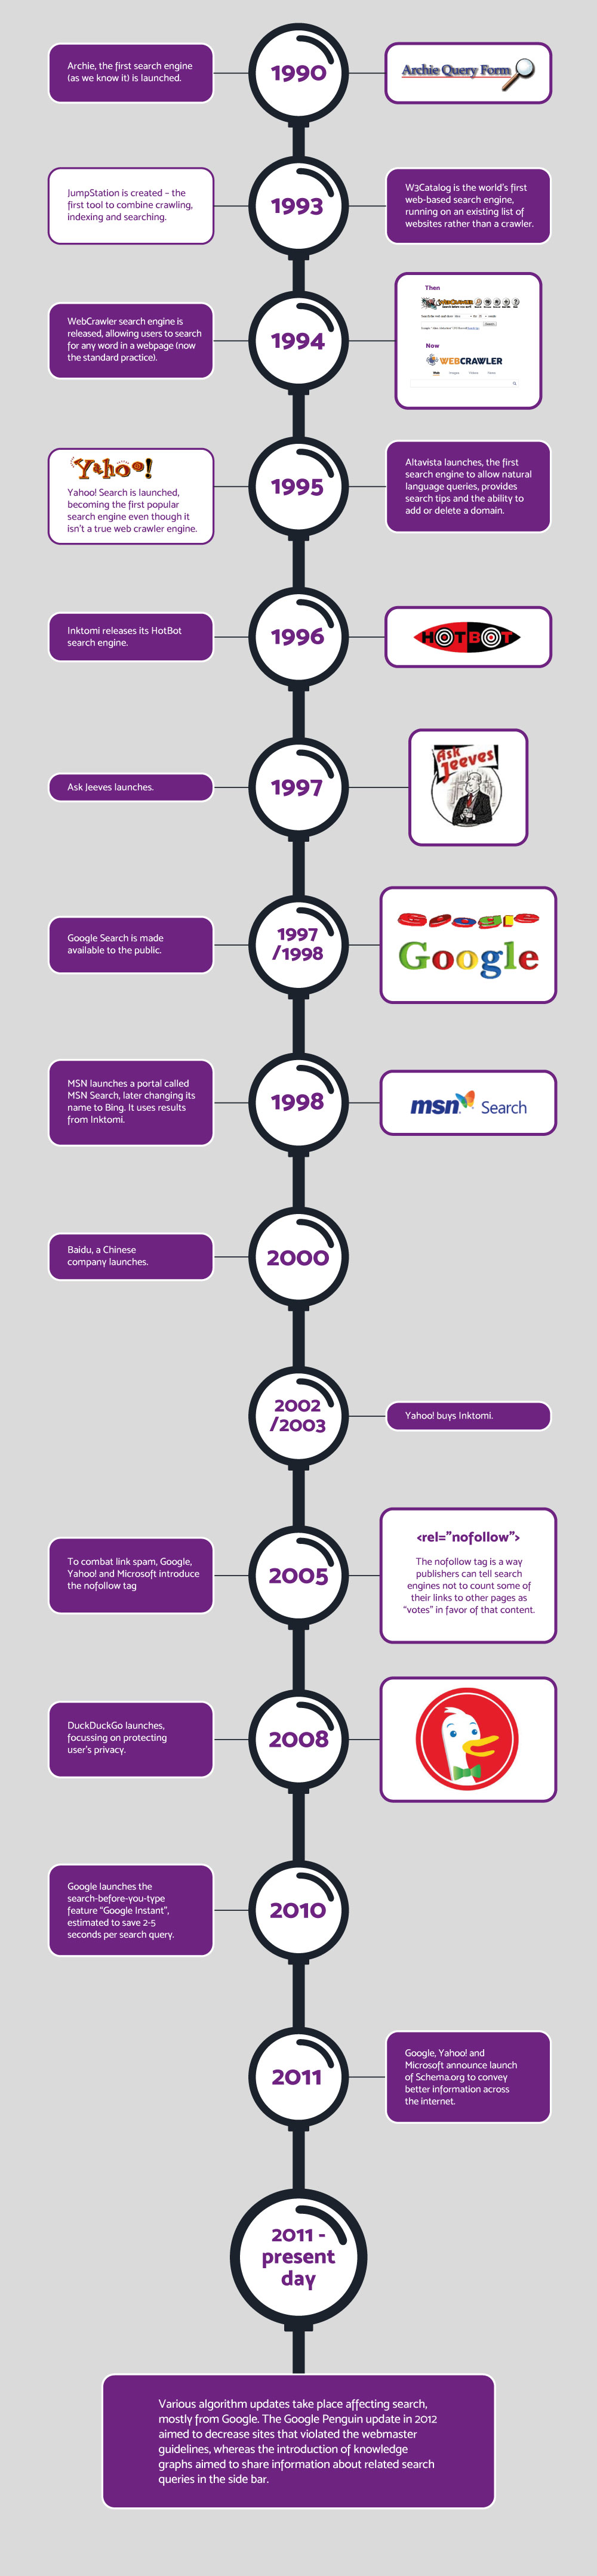 infographic showing the history of search engines